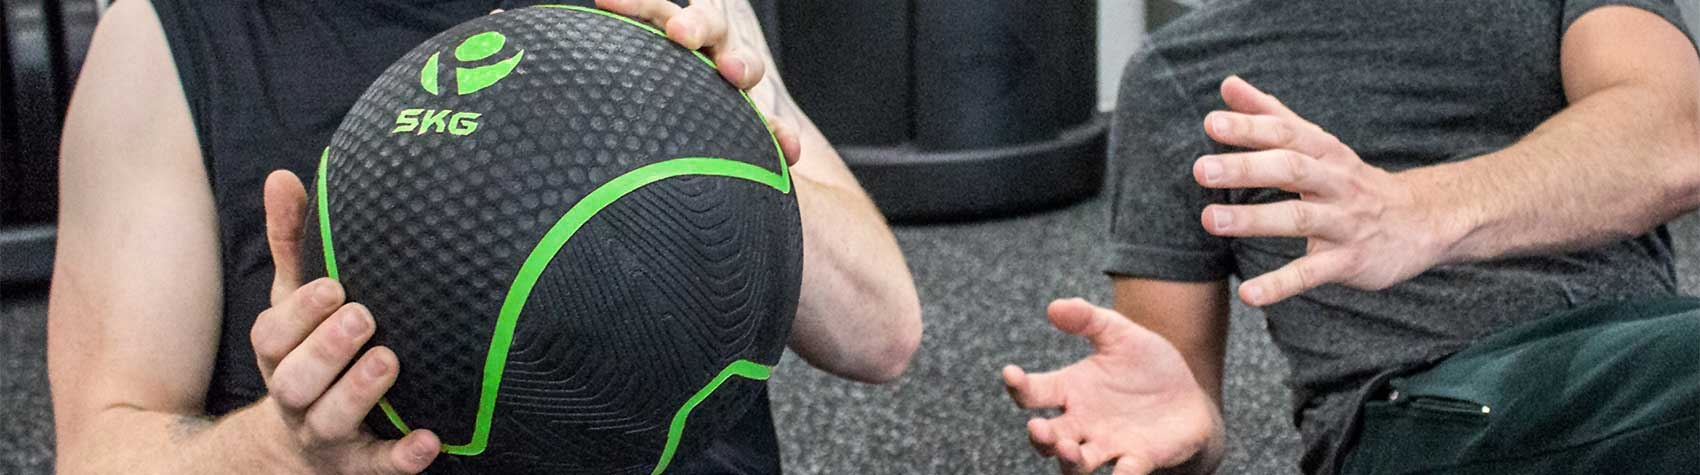 One person passing a weighted medicine ball to another person